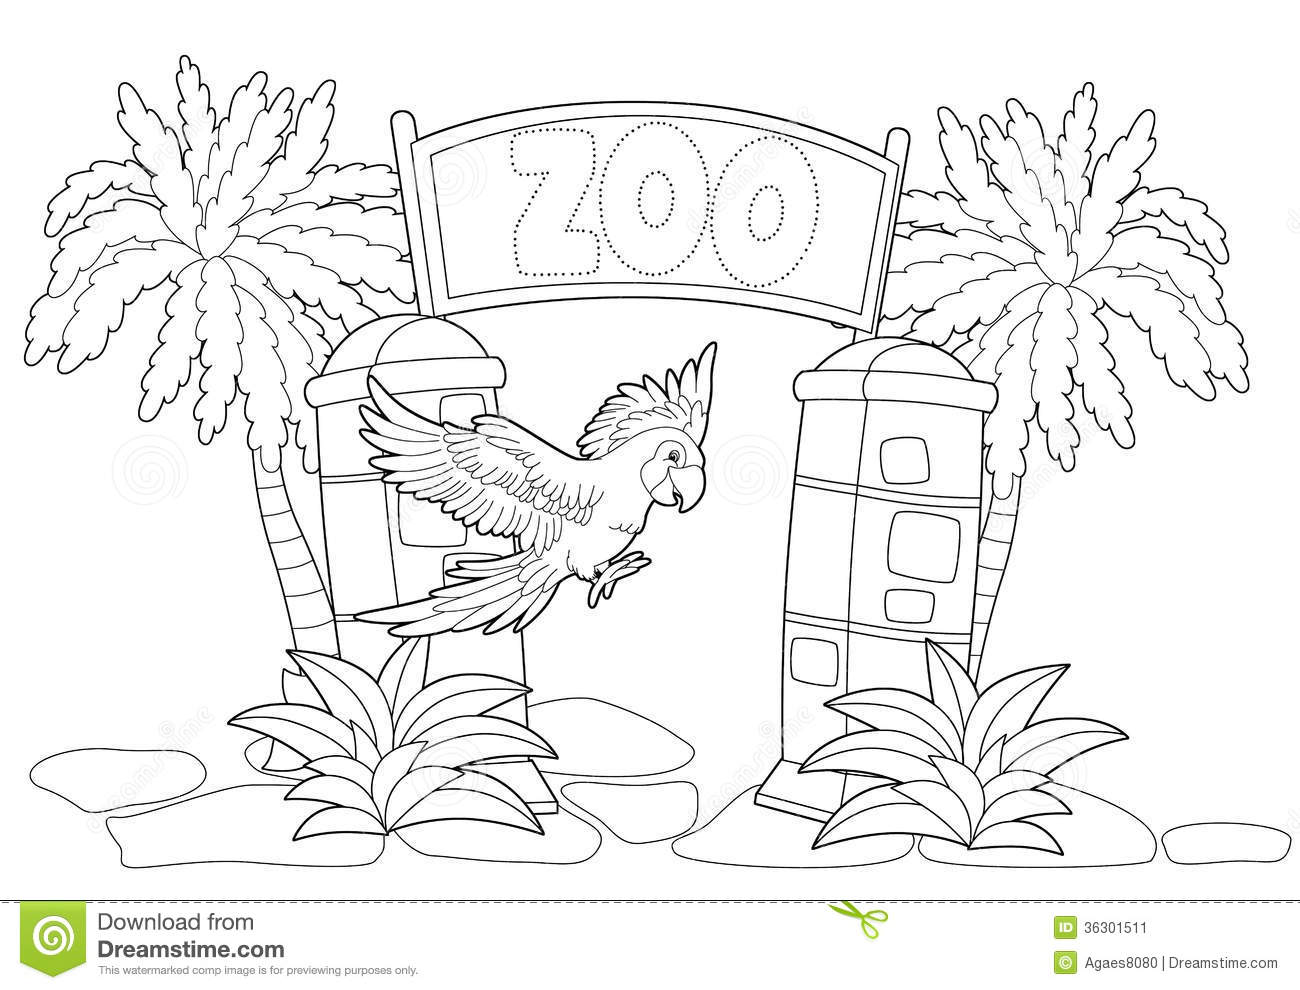 Stock Image Coloring Page Zoo Illustration Children Beautiful Image36301511 on Pages For Preschoolers Zoo Animals Worksheet